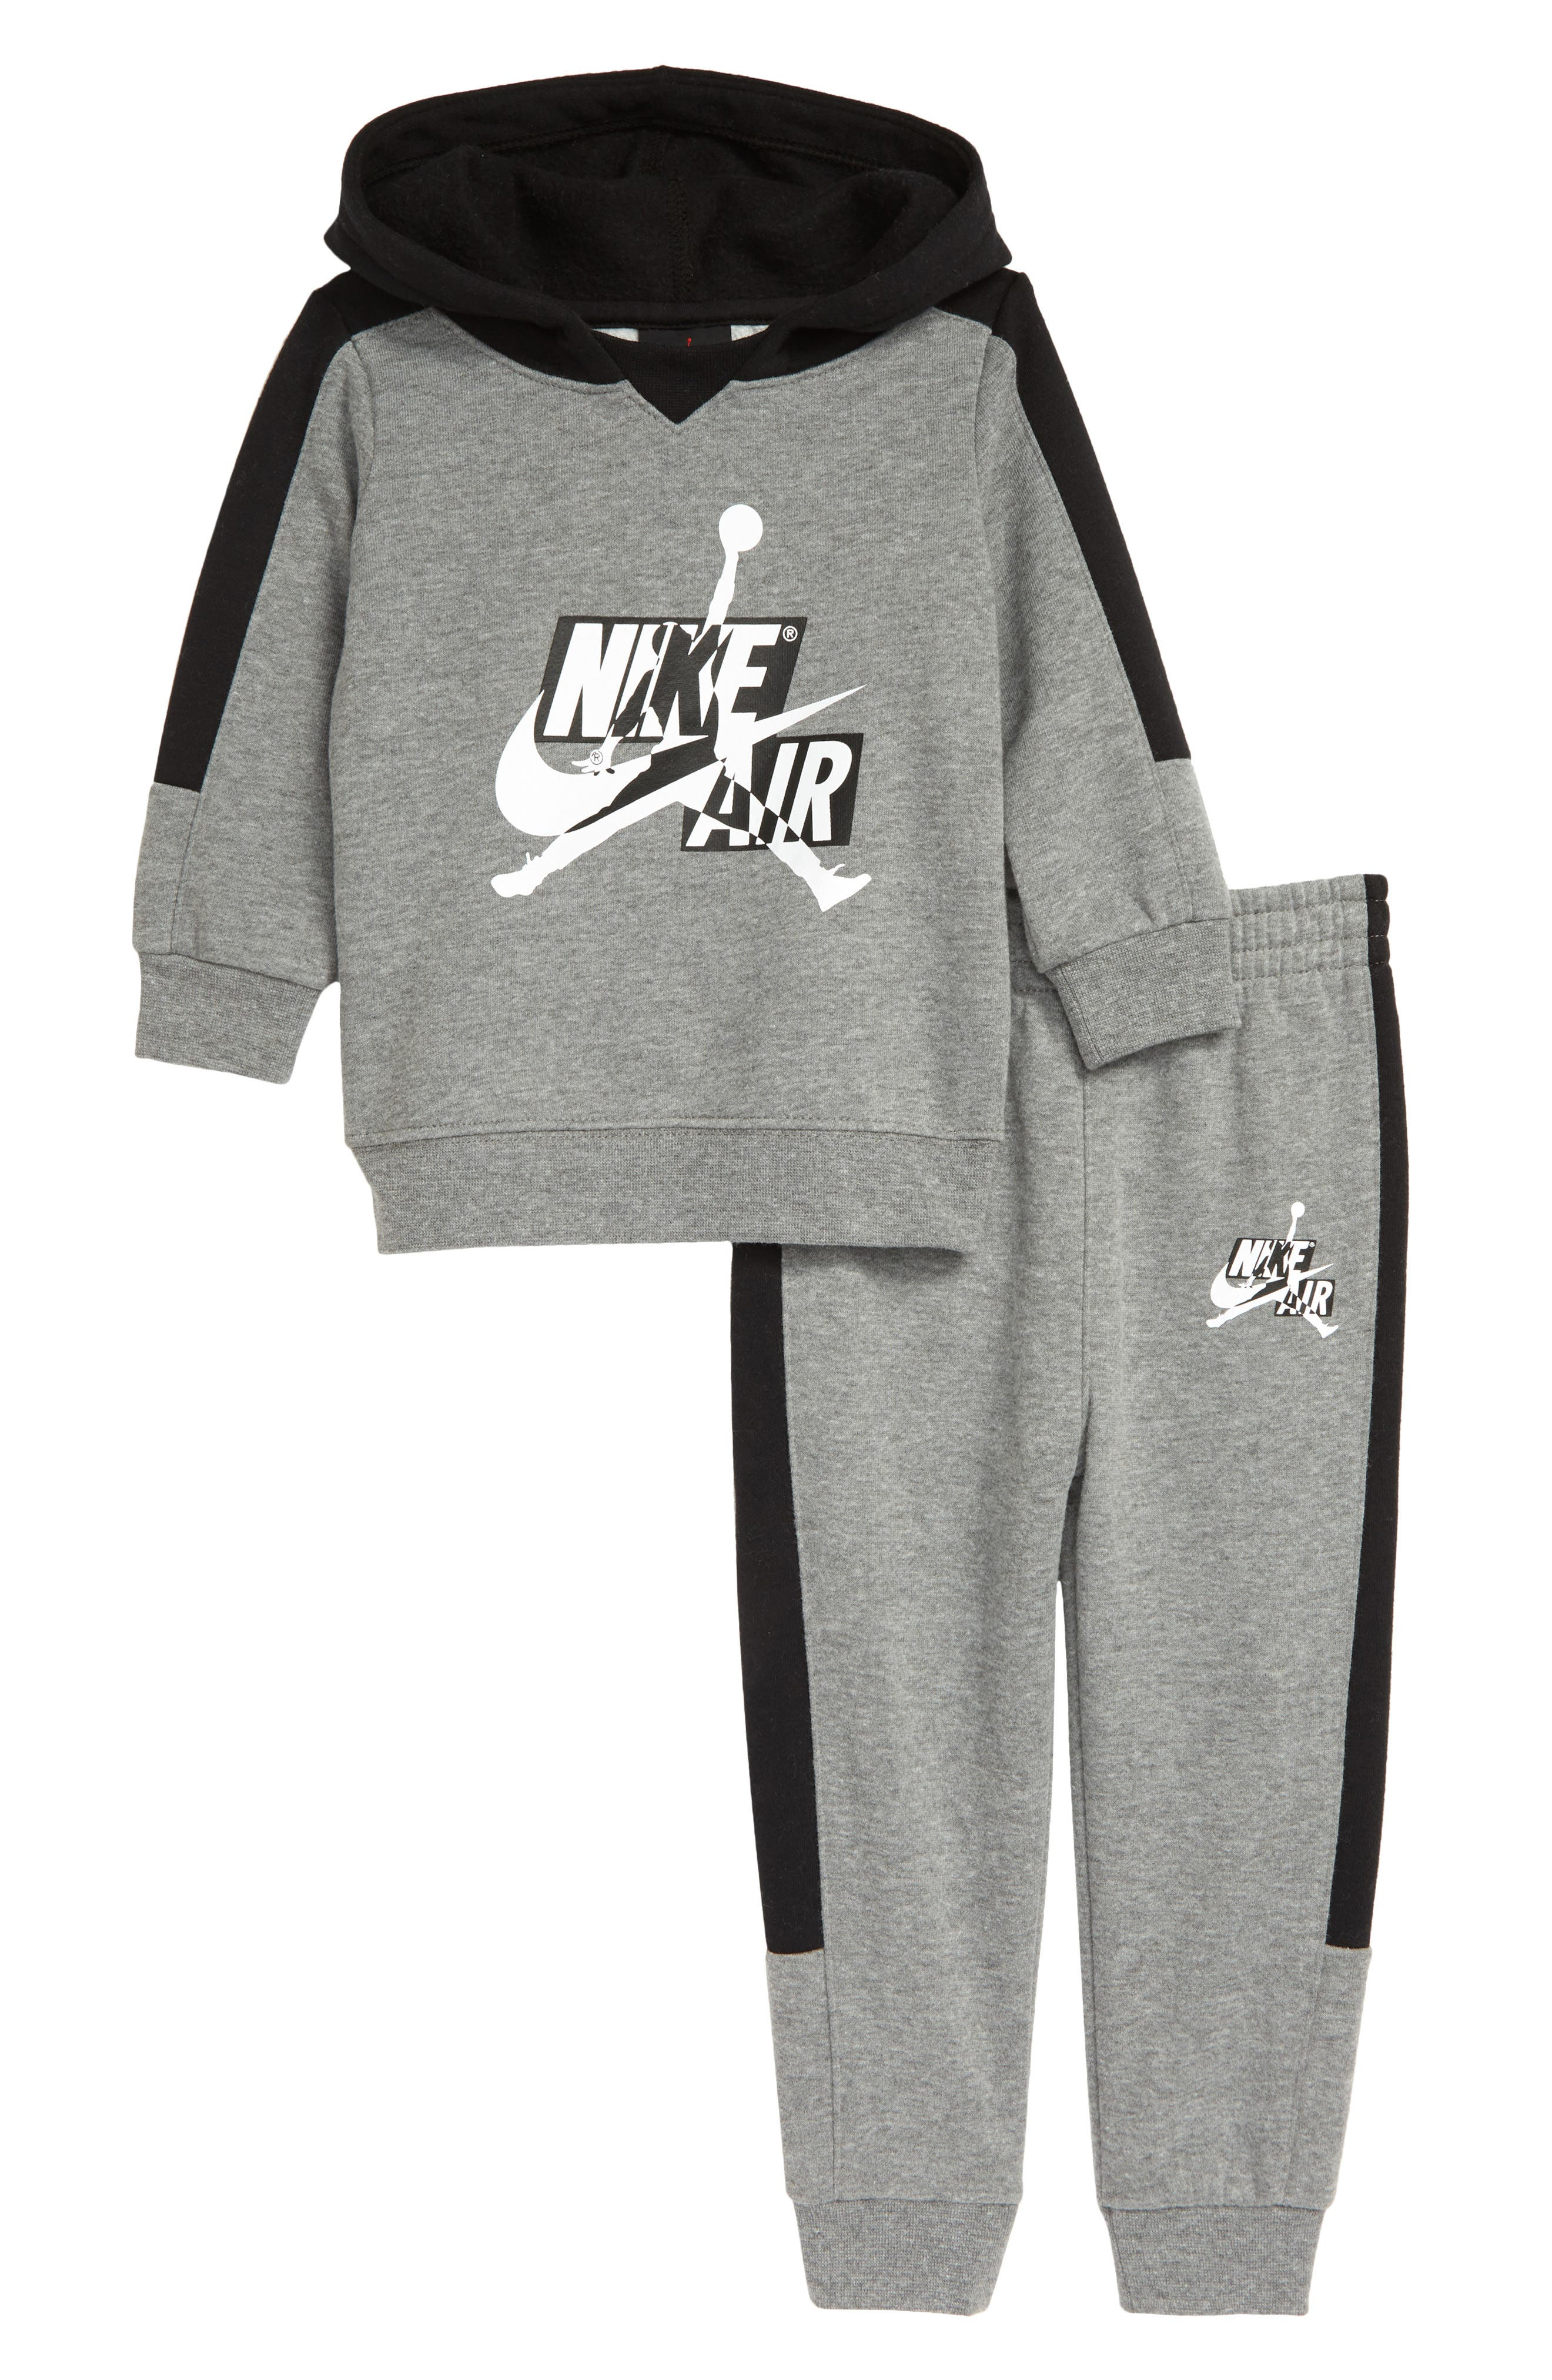 Nike Baby Boy 2 Piece Hooded Jogging Set ~ Navy Blue /& White ~ Just Do It ~